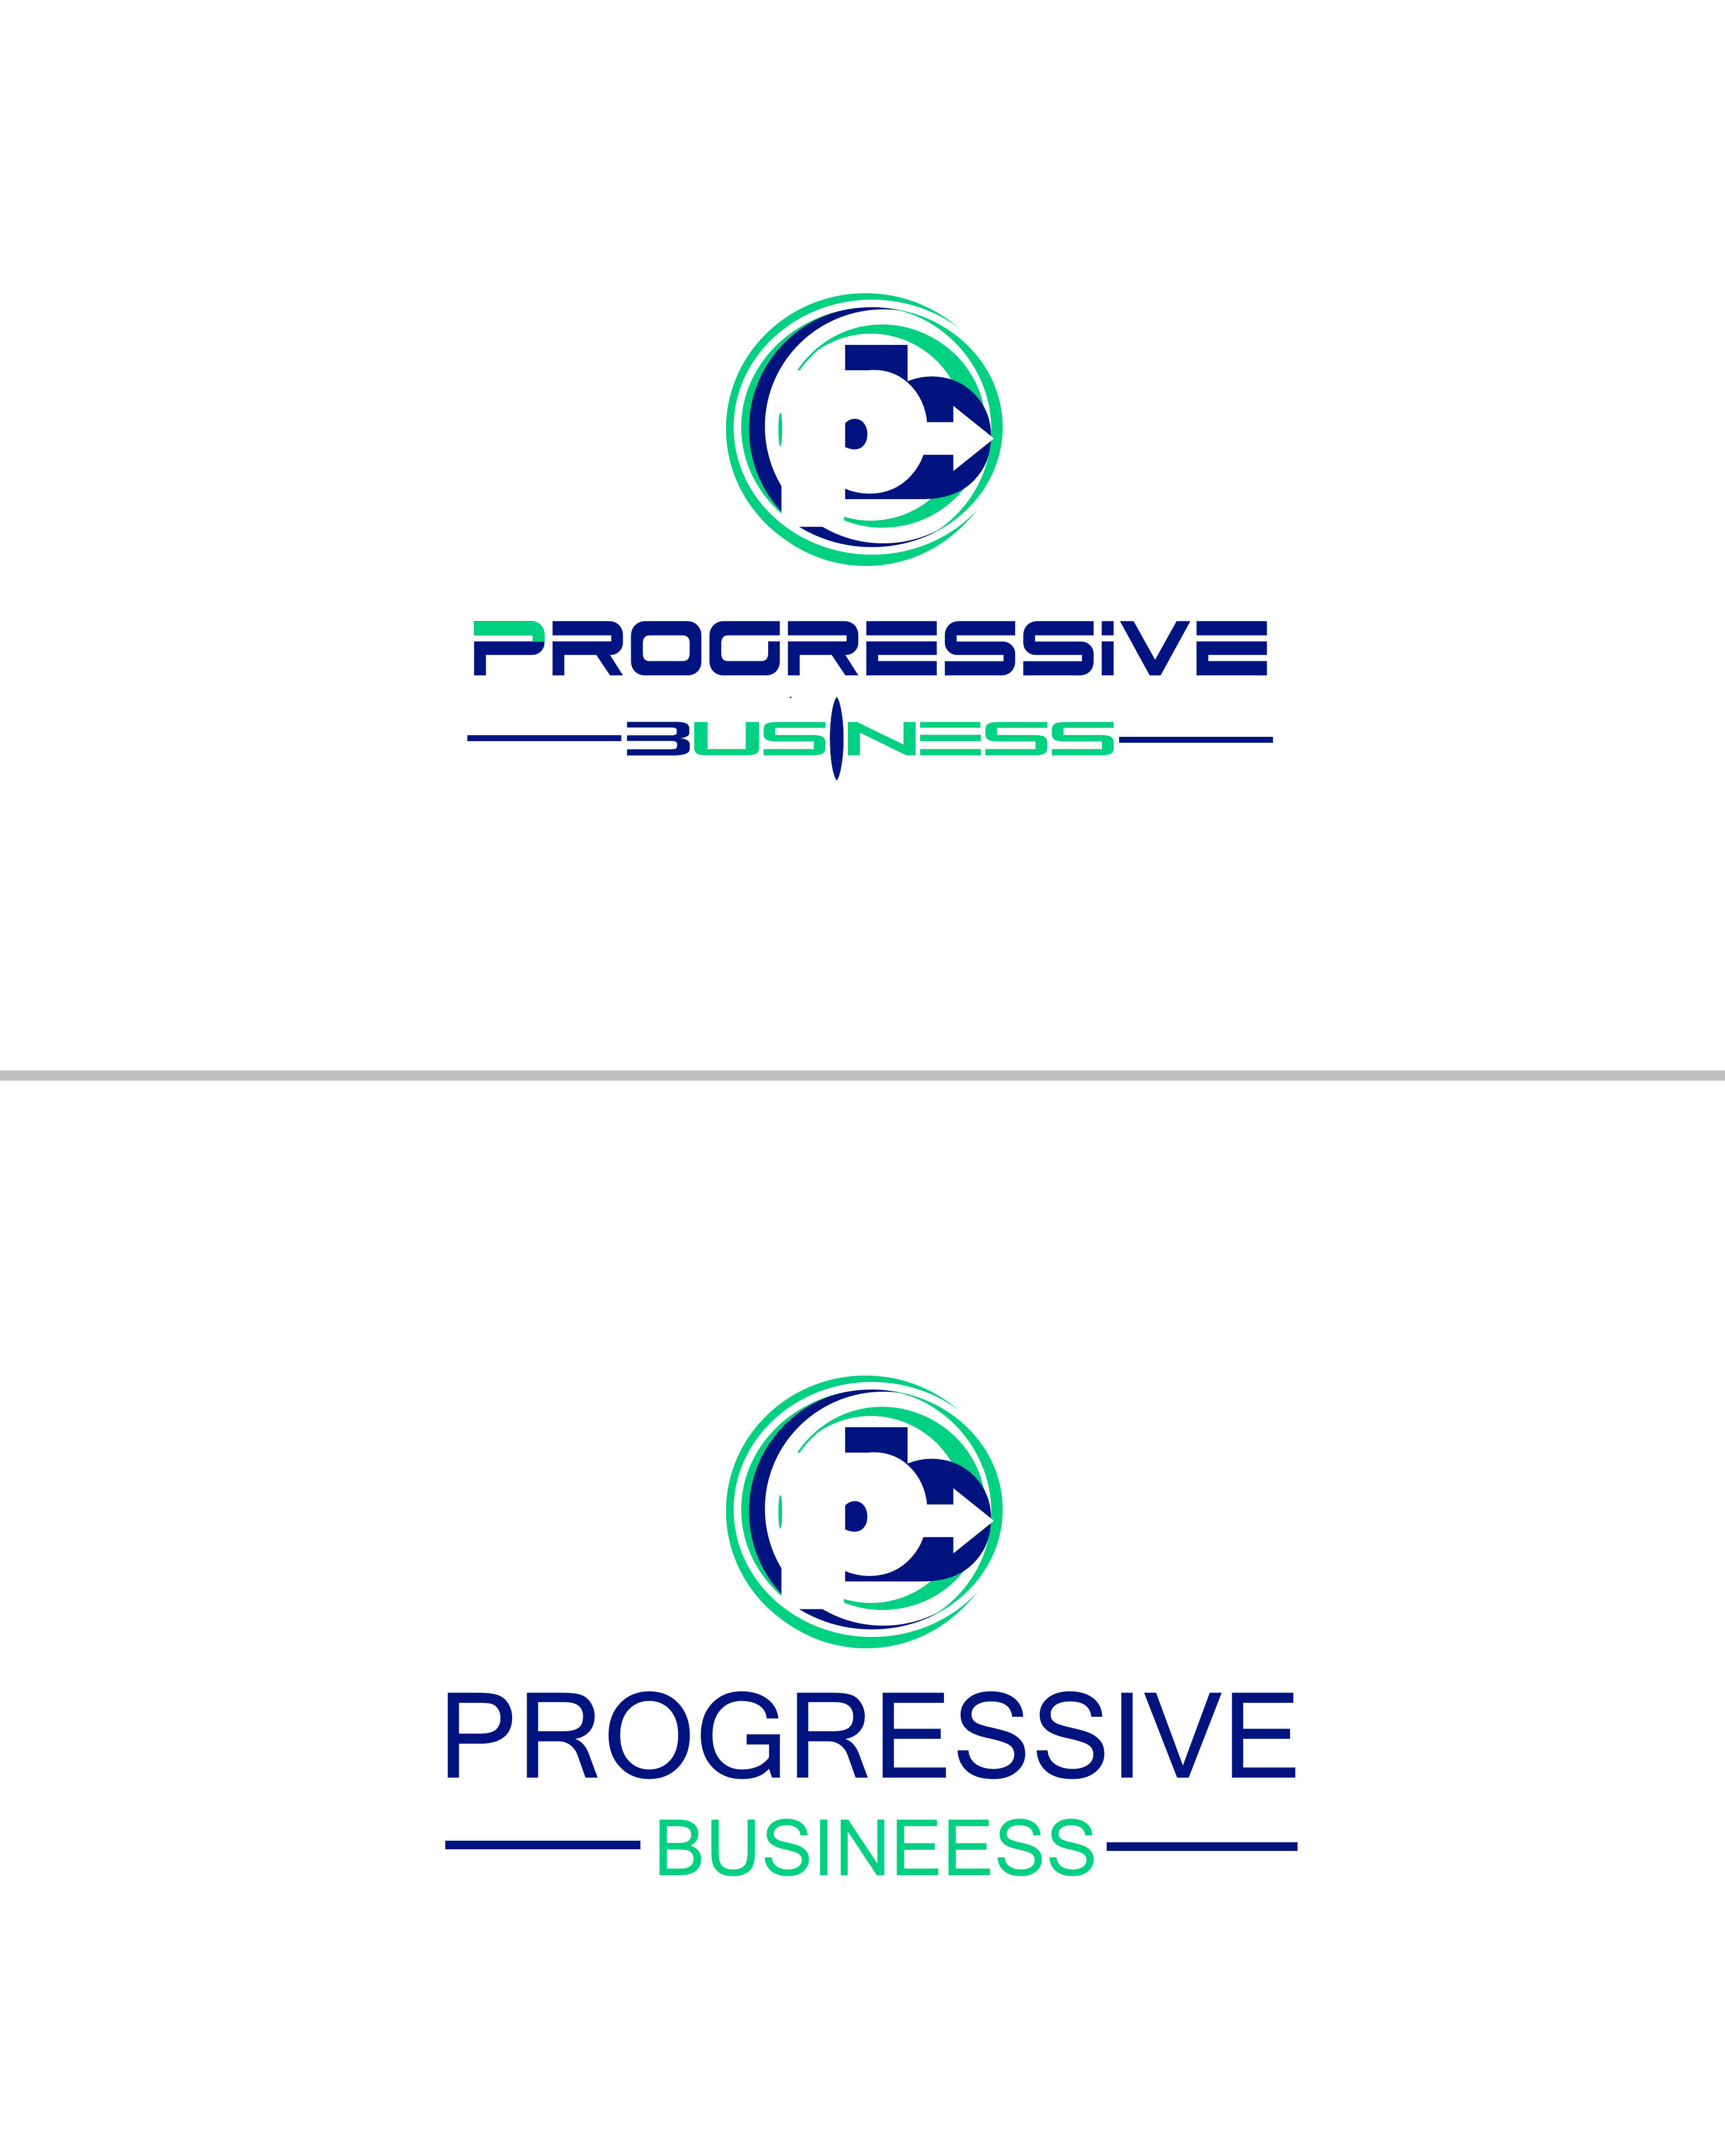 Logo Design by Roberto Bassi - Entry No. 211 in the Logo Design Contest Captivating Logo Design for Progressive Business.